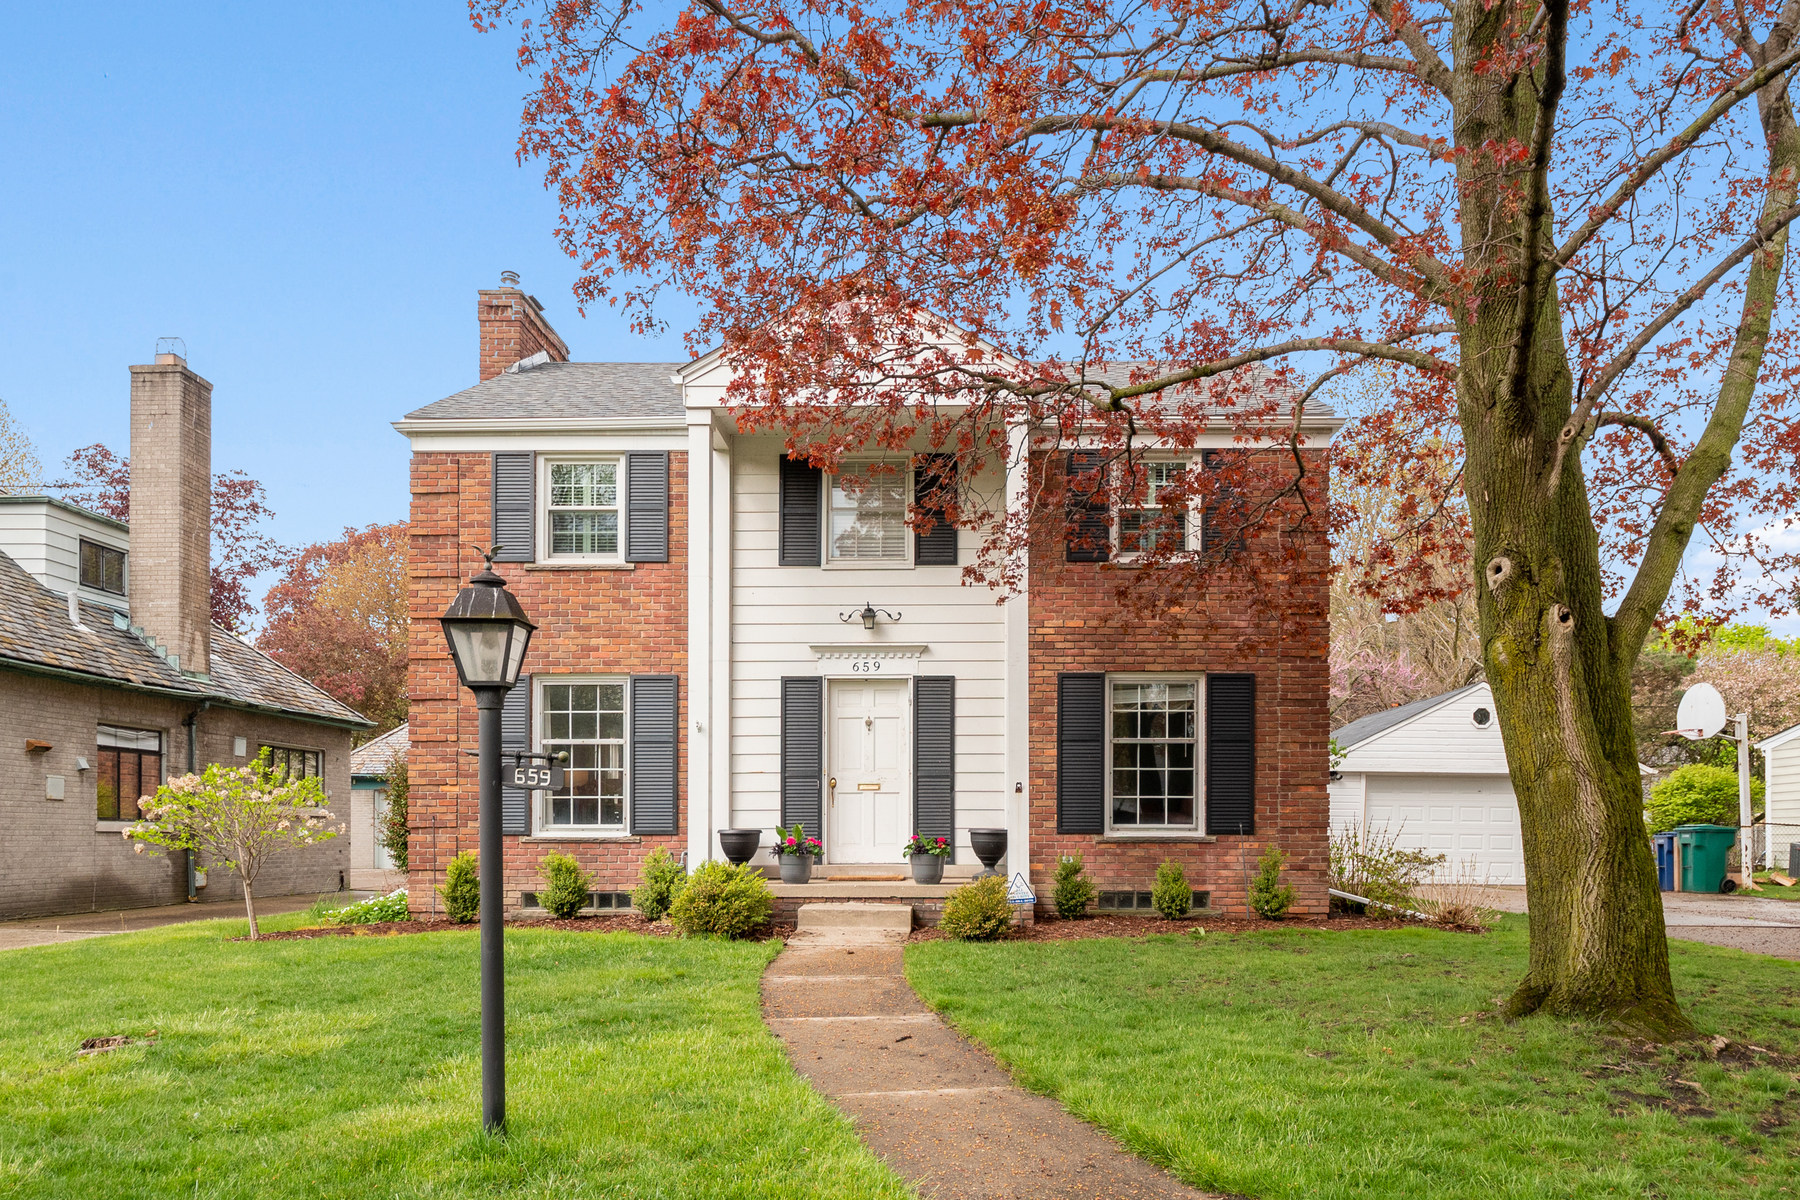 Single Family Homes for Sale at Grosse Point Park 659 Lakepointe Street Grosse Pointe Park, Michigan 48230 United States